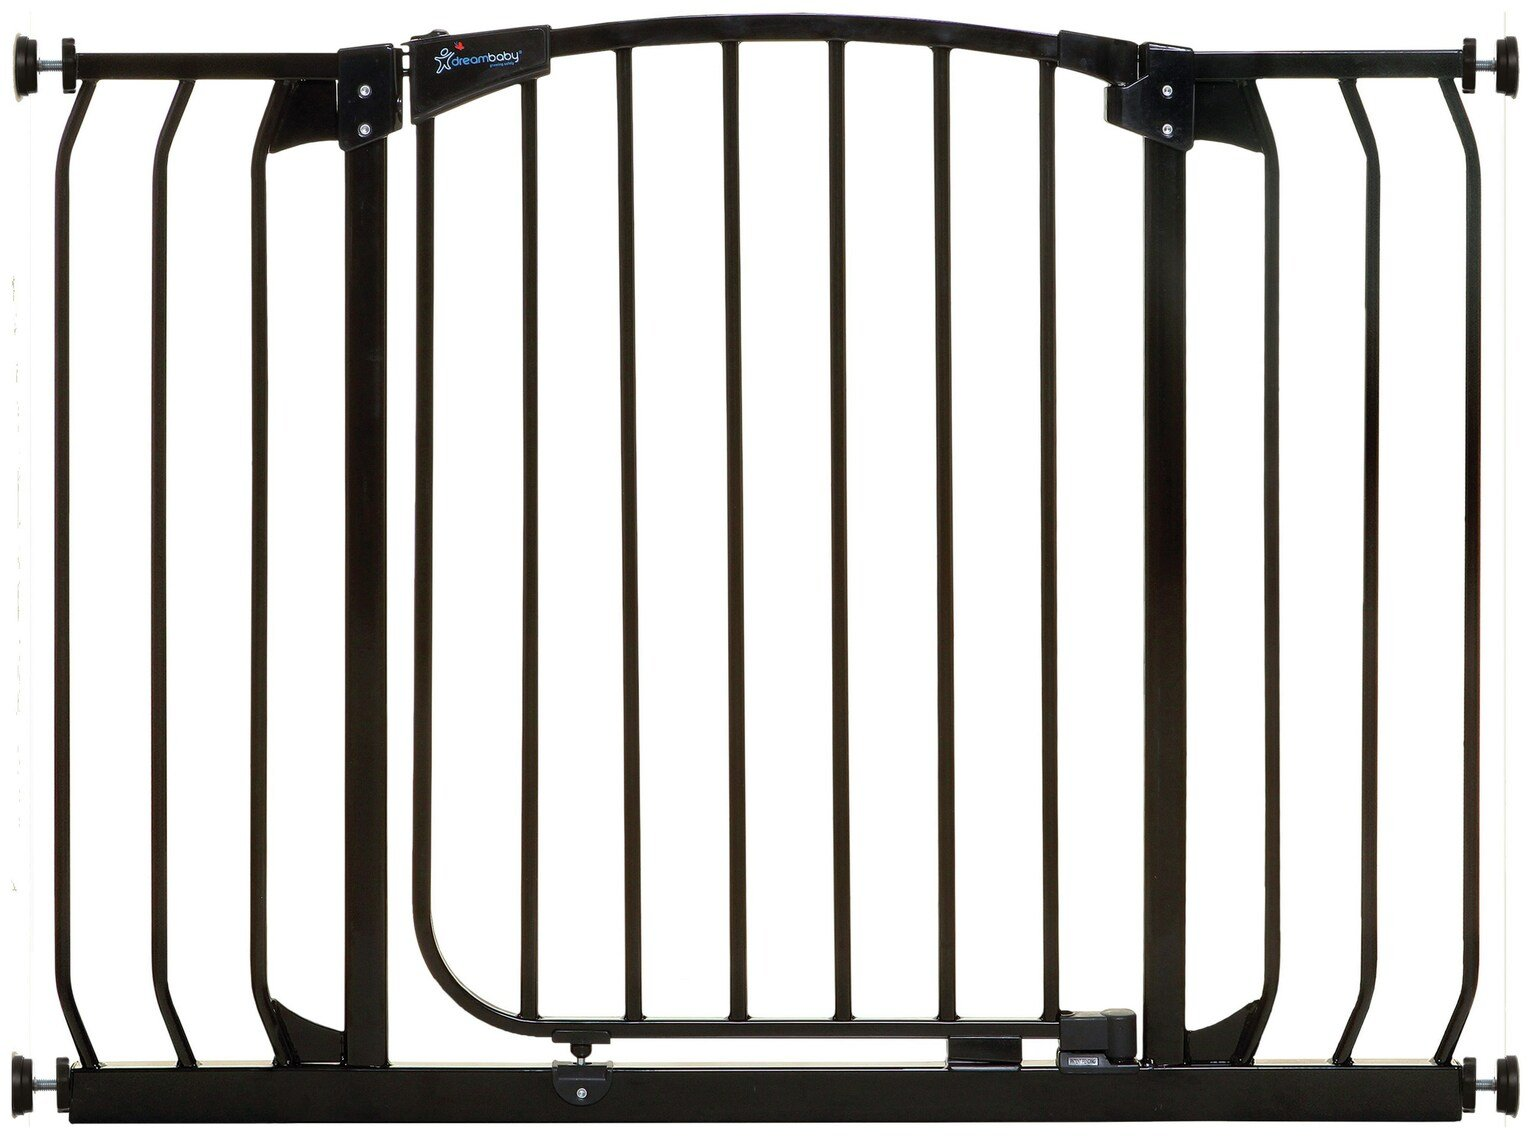 Dreambaby Chelsea Auto Close Security Gate- Black (97-106cm)